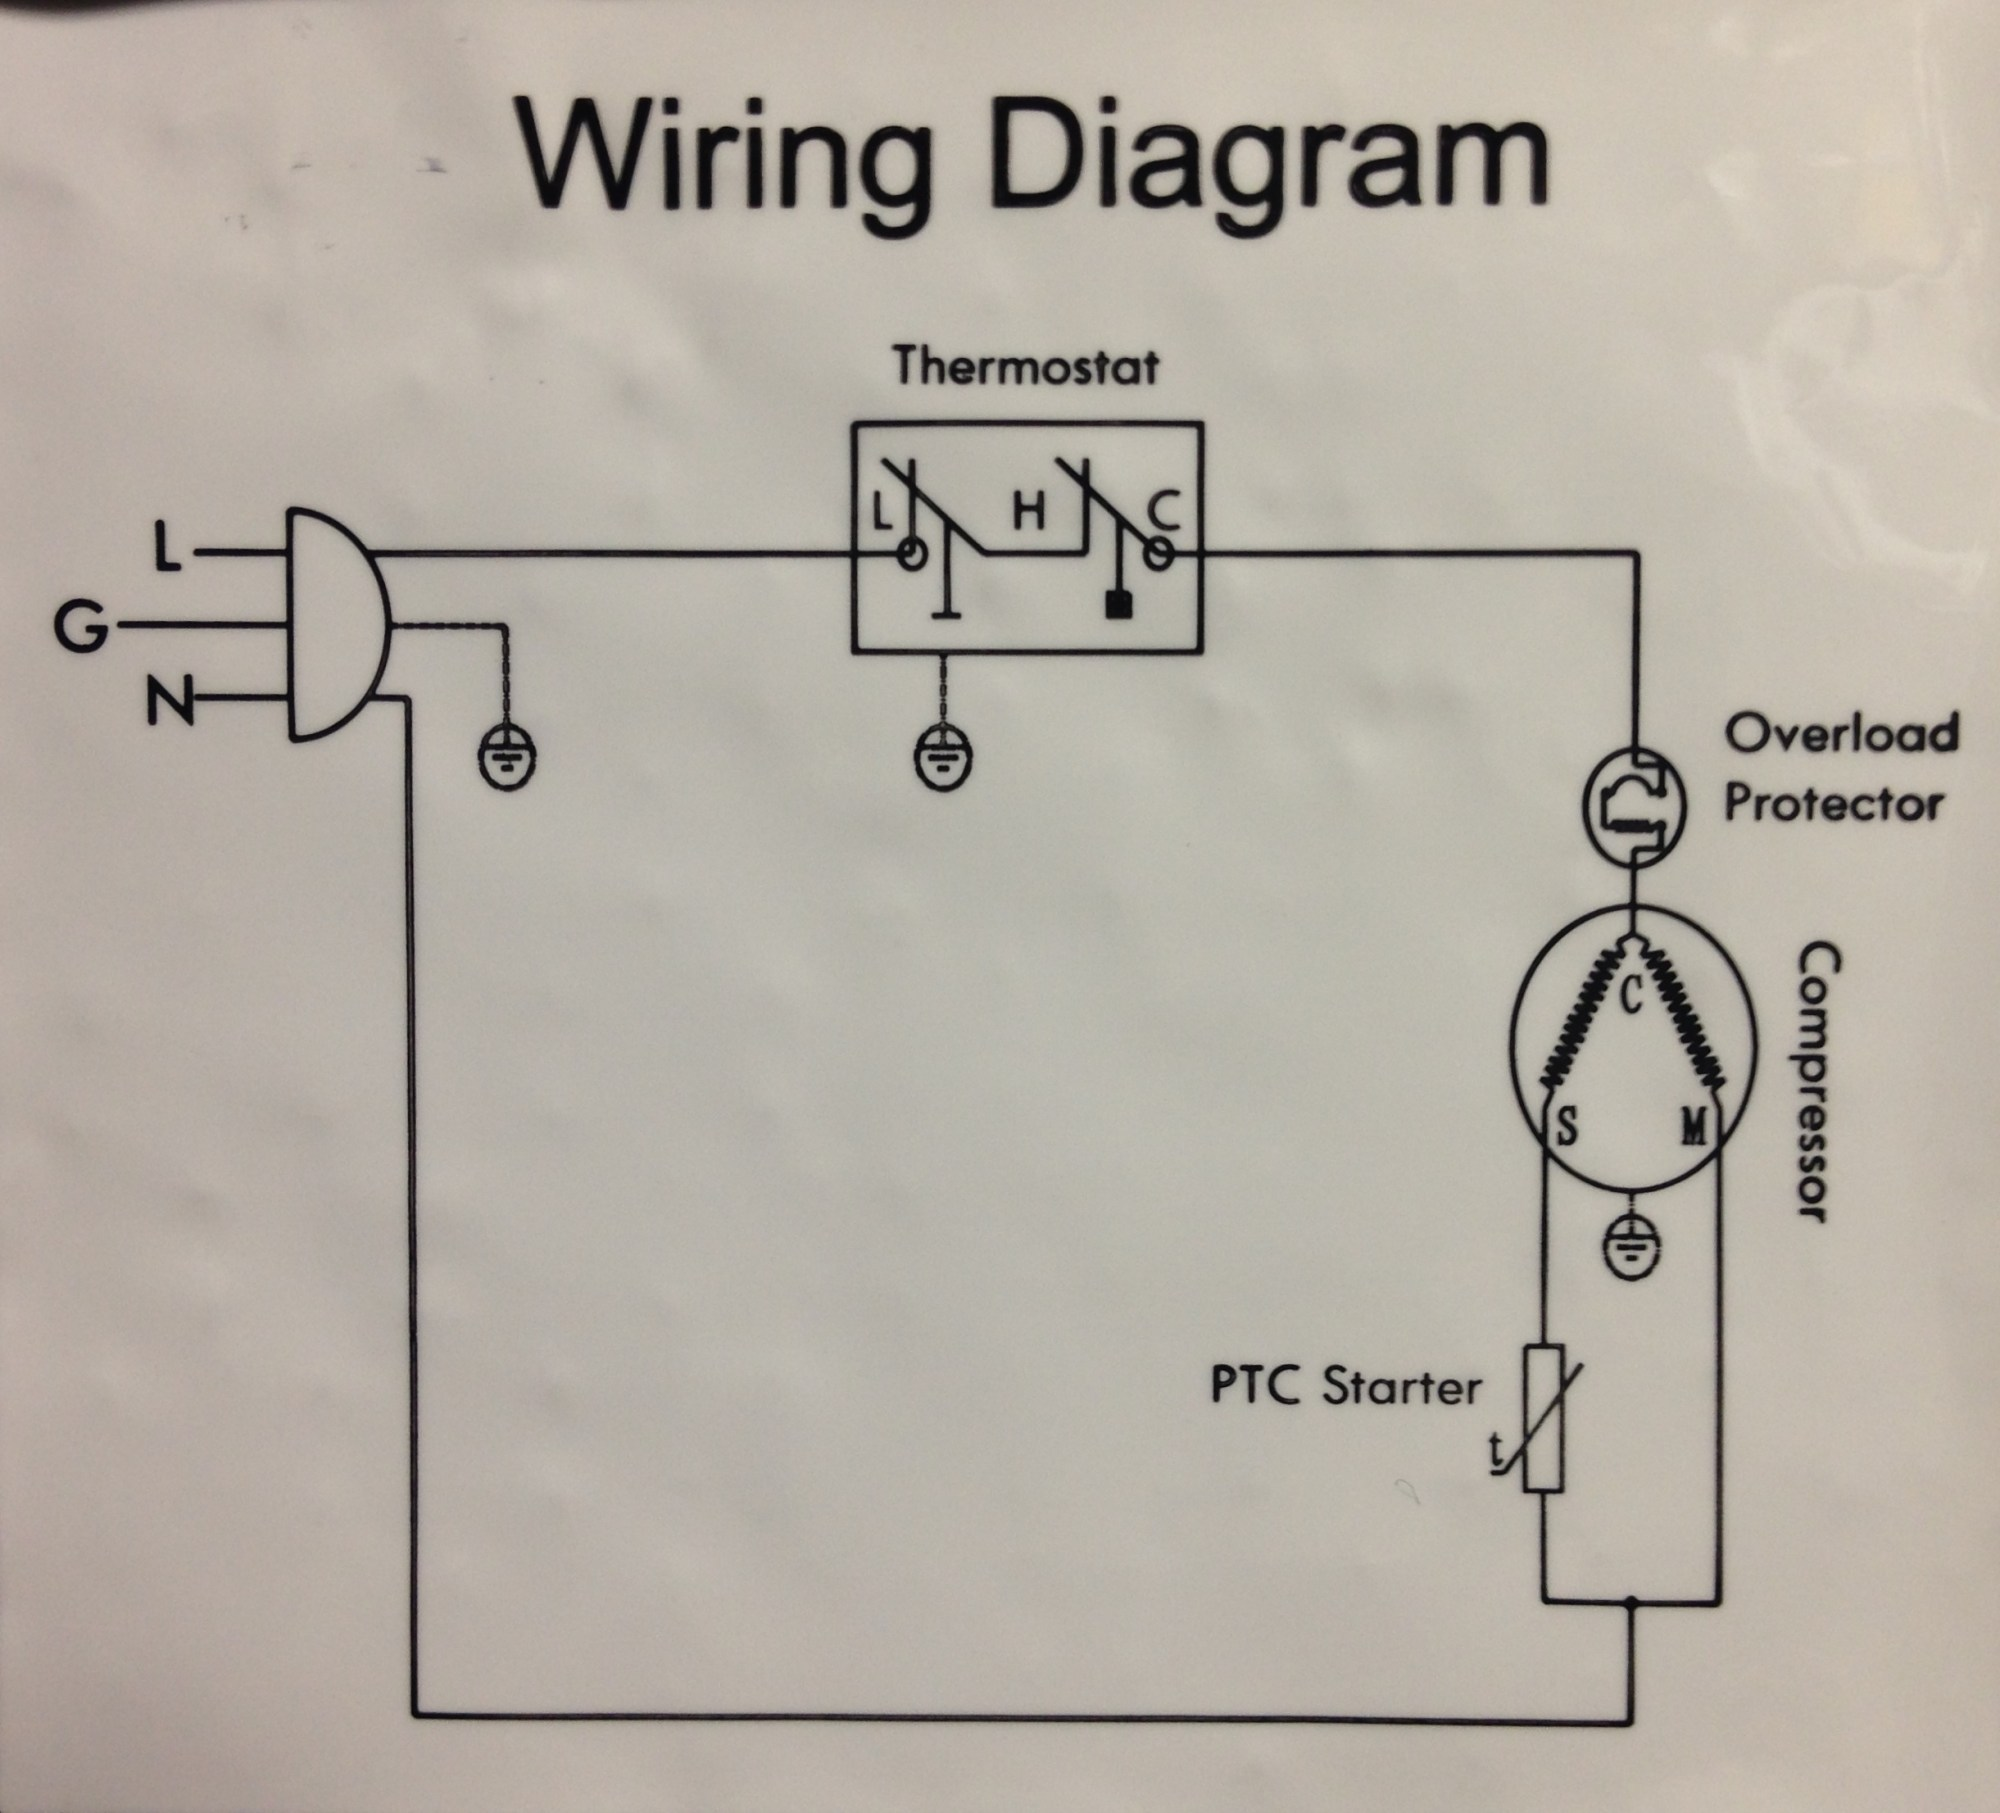 hight resolution of no frost refrigerator wiring diagram 1 wiring diagram source chevy 35jha2003chevytahoewiringdiagramsacradiotakenapartac